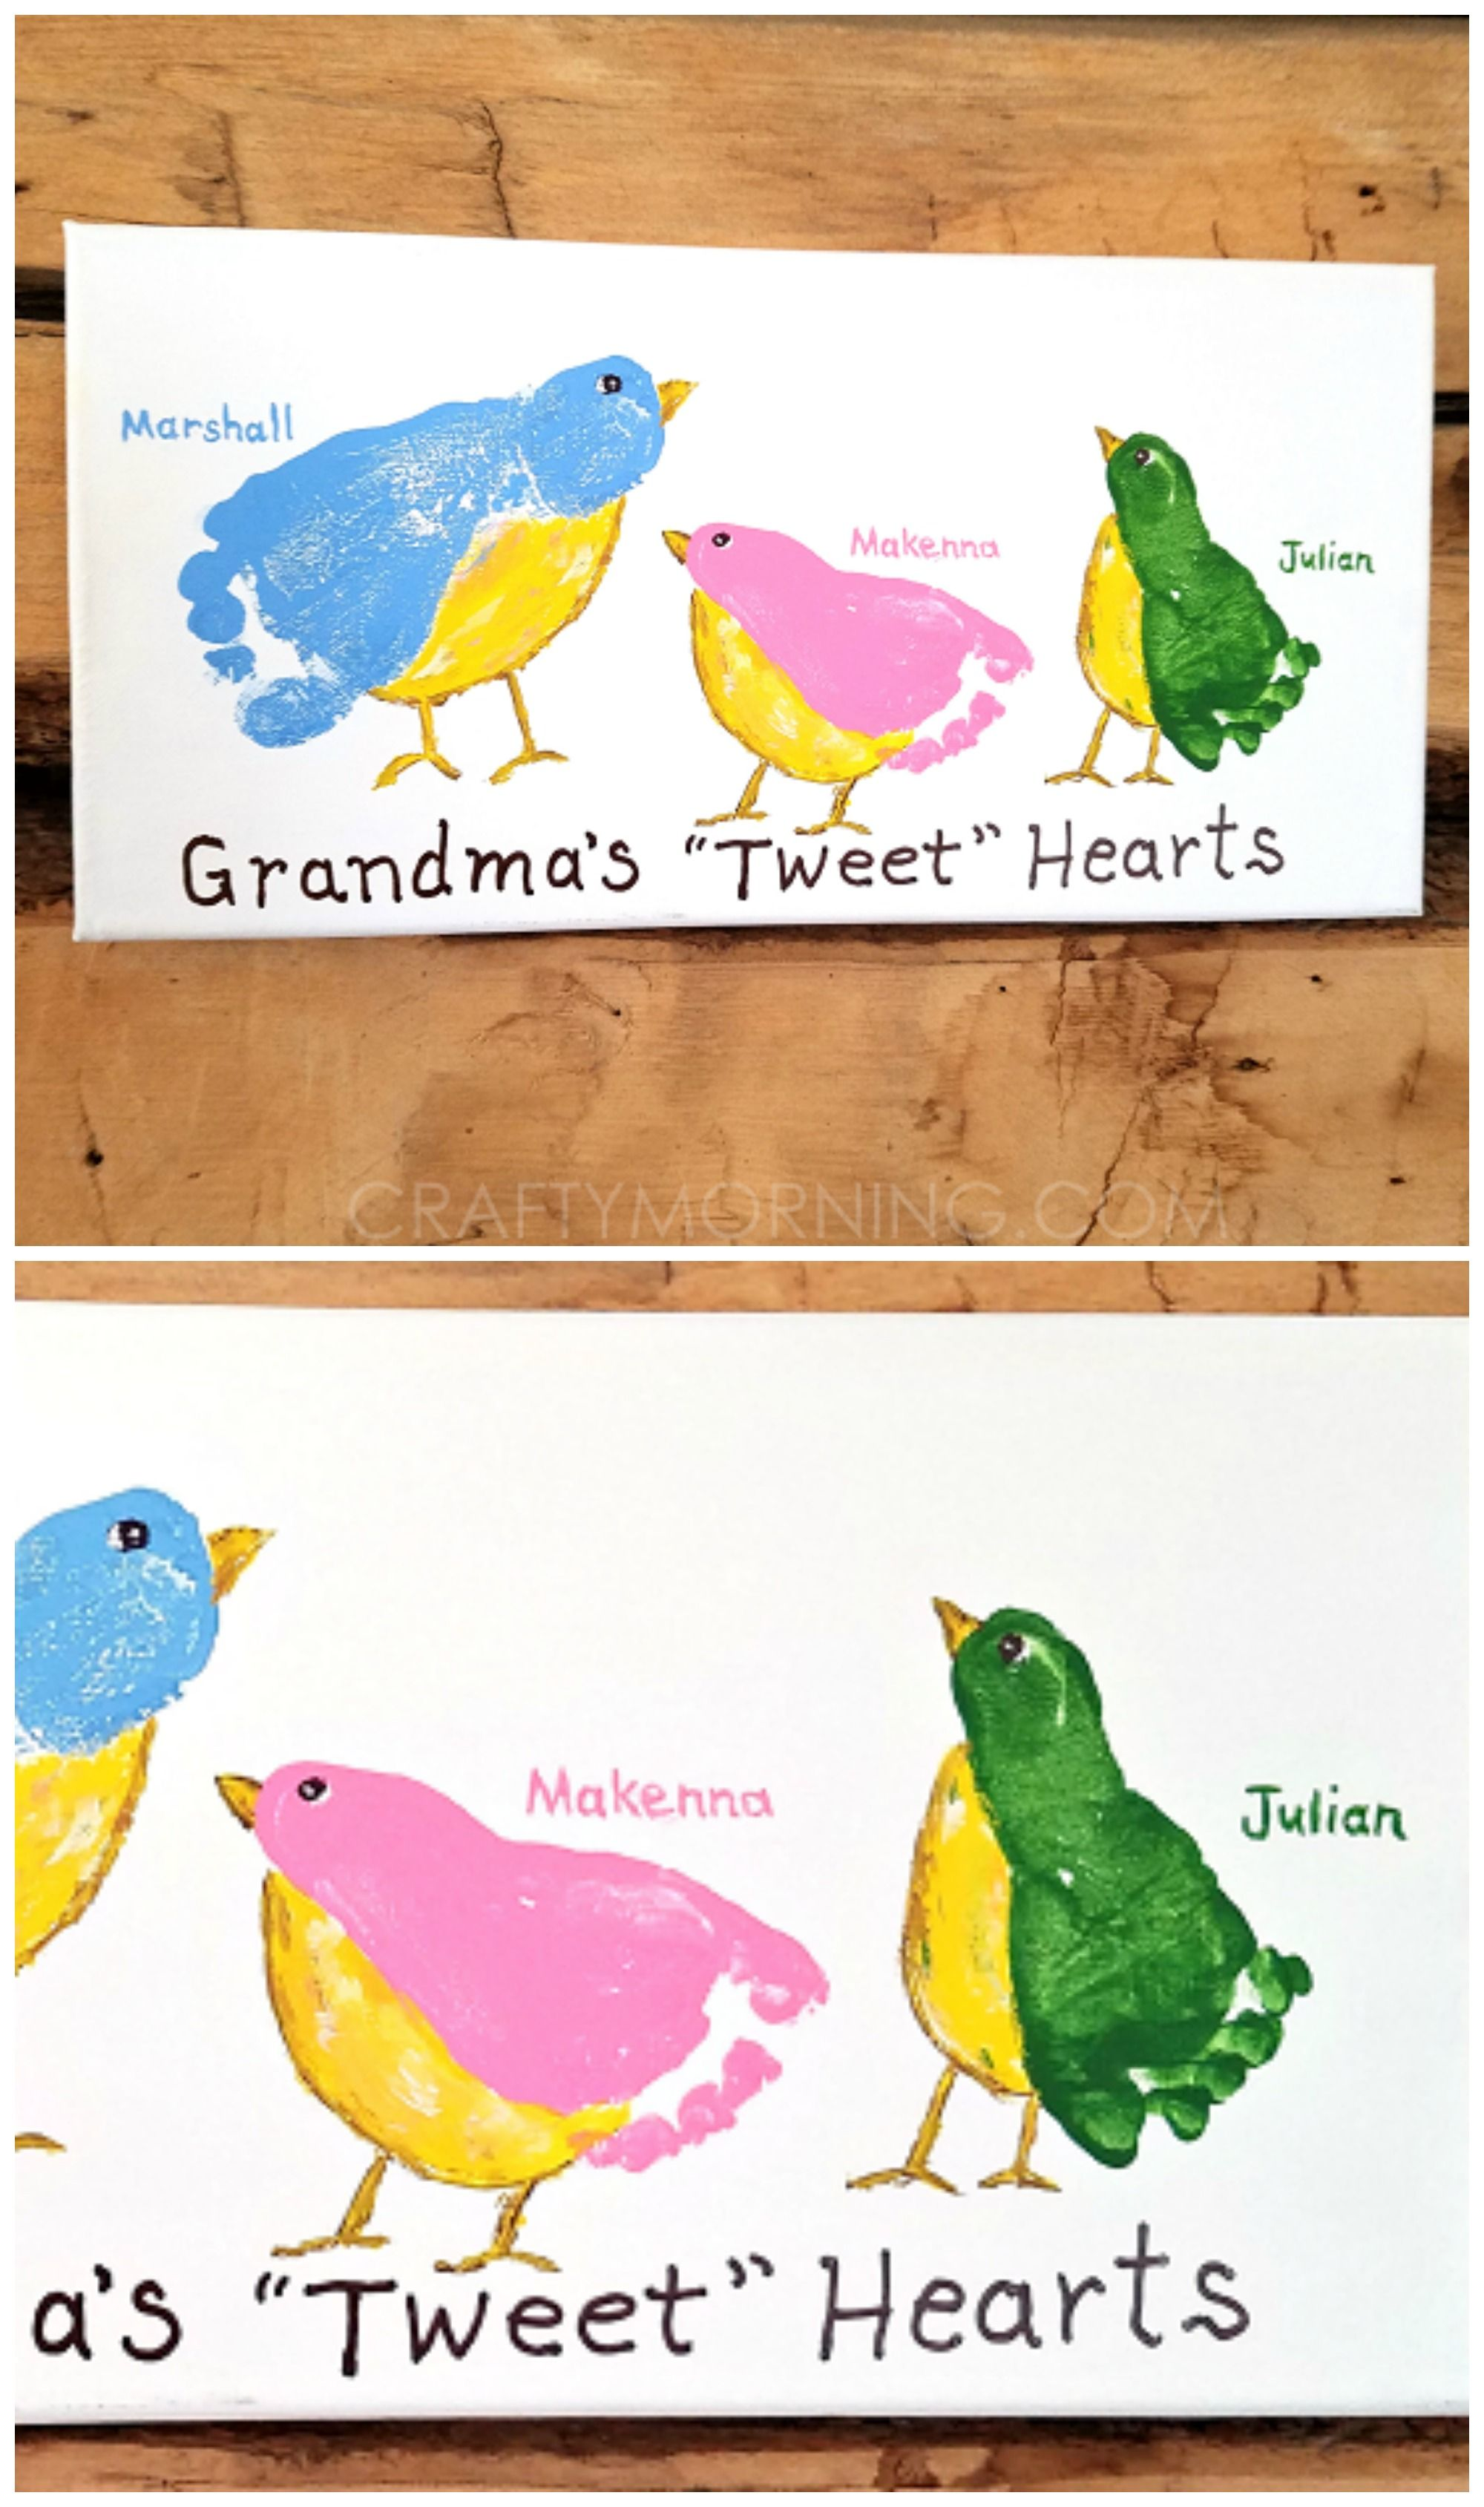 Diy Mothers Day Gifts For Grandma Grandma 39s Quottweet Quot Hearts Footprint Canvas What A Cute